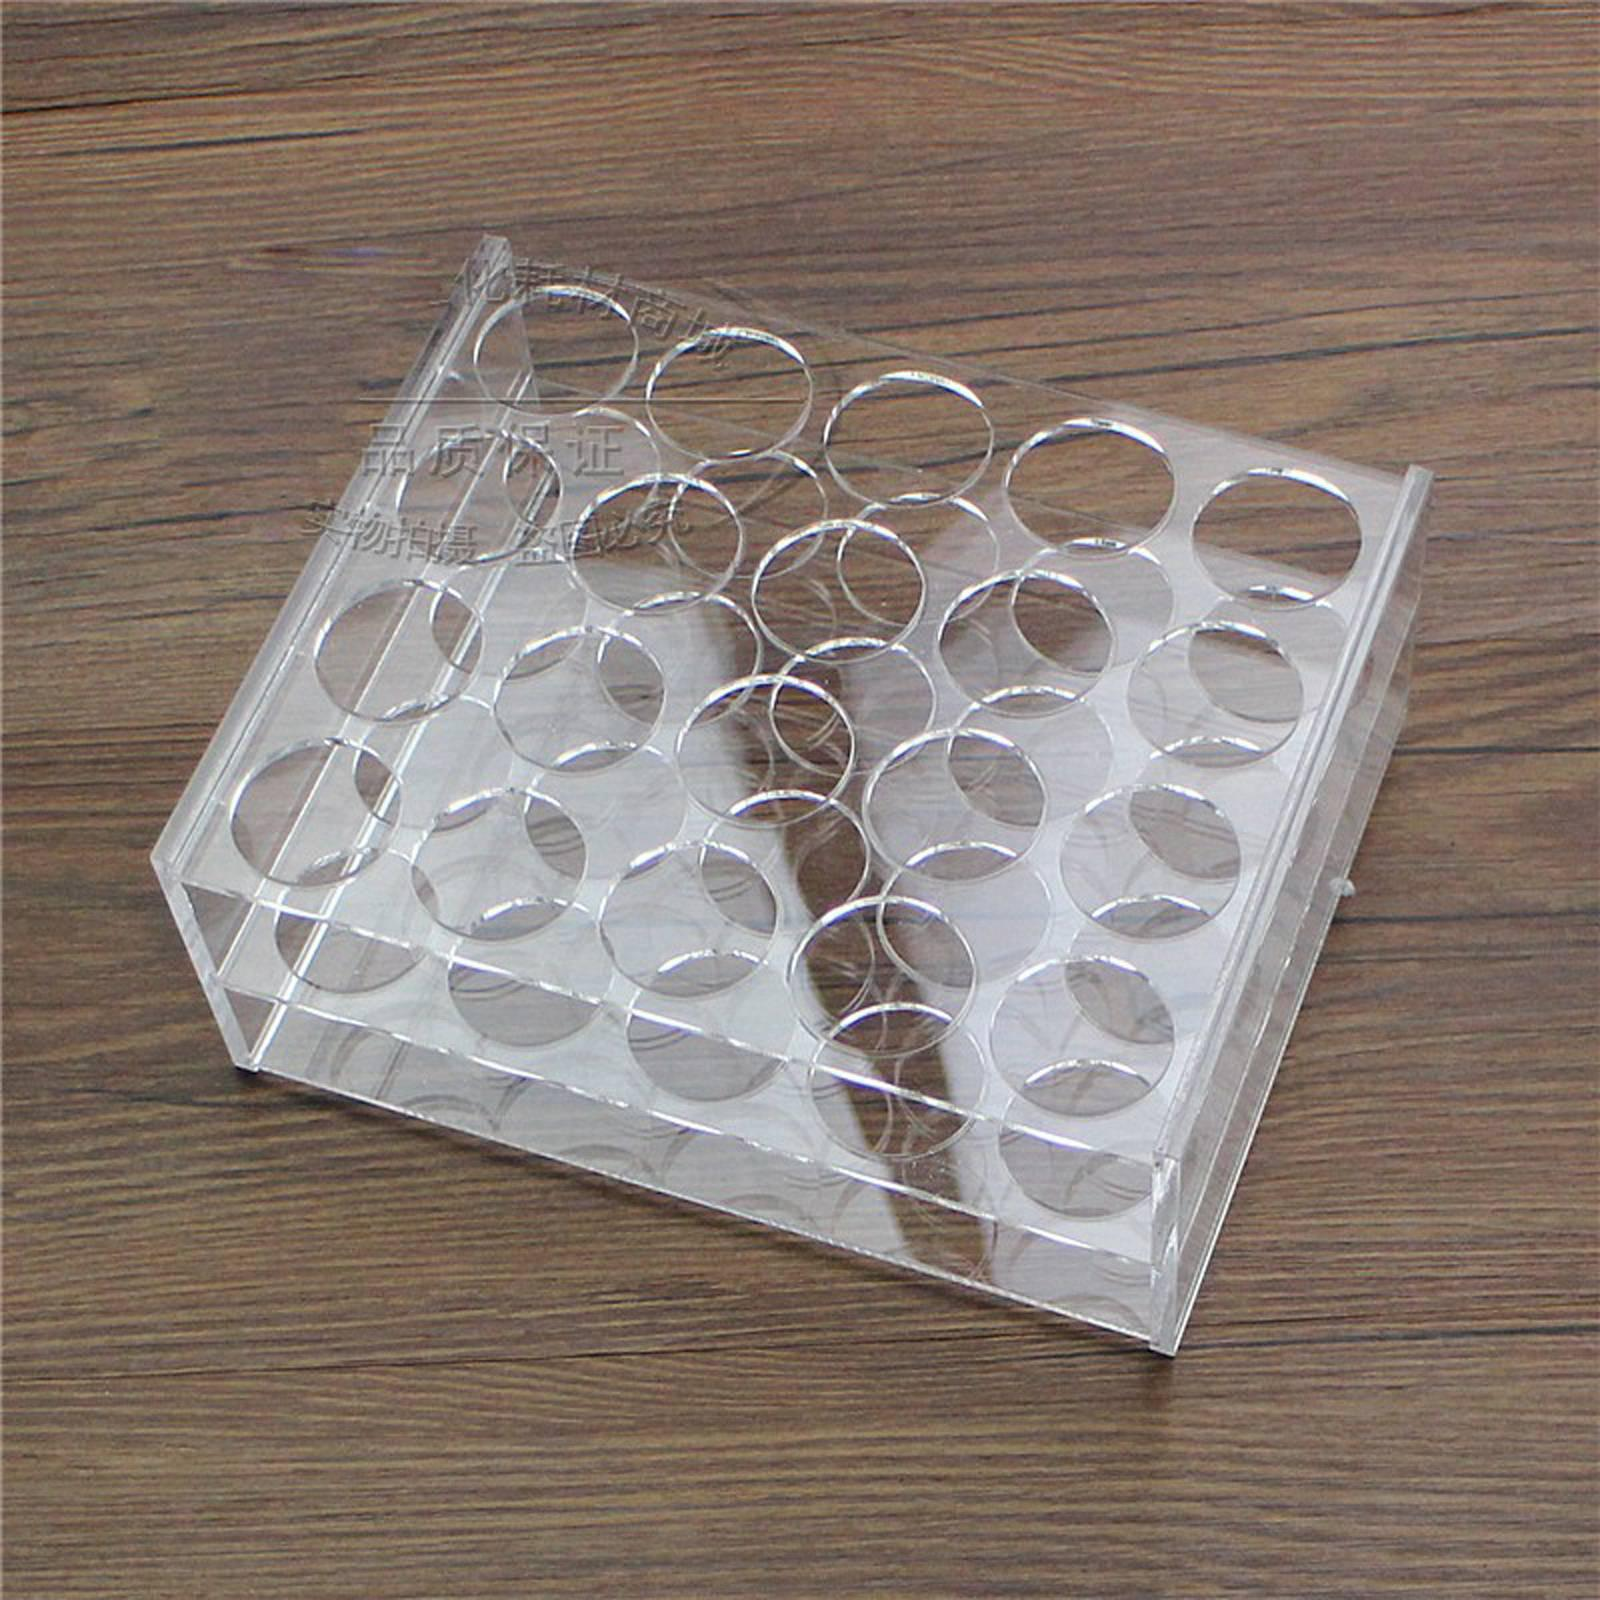 29mm Diam 20 Holes Methyl Methacrylate Rack Stand For 50ml Centrifuge Tubes